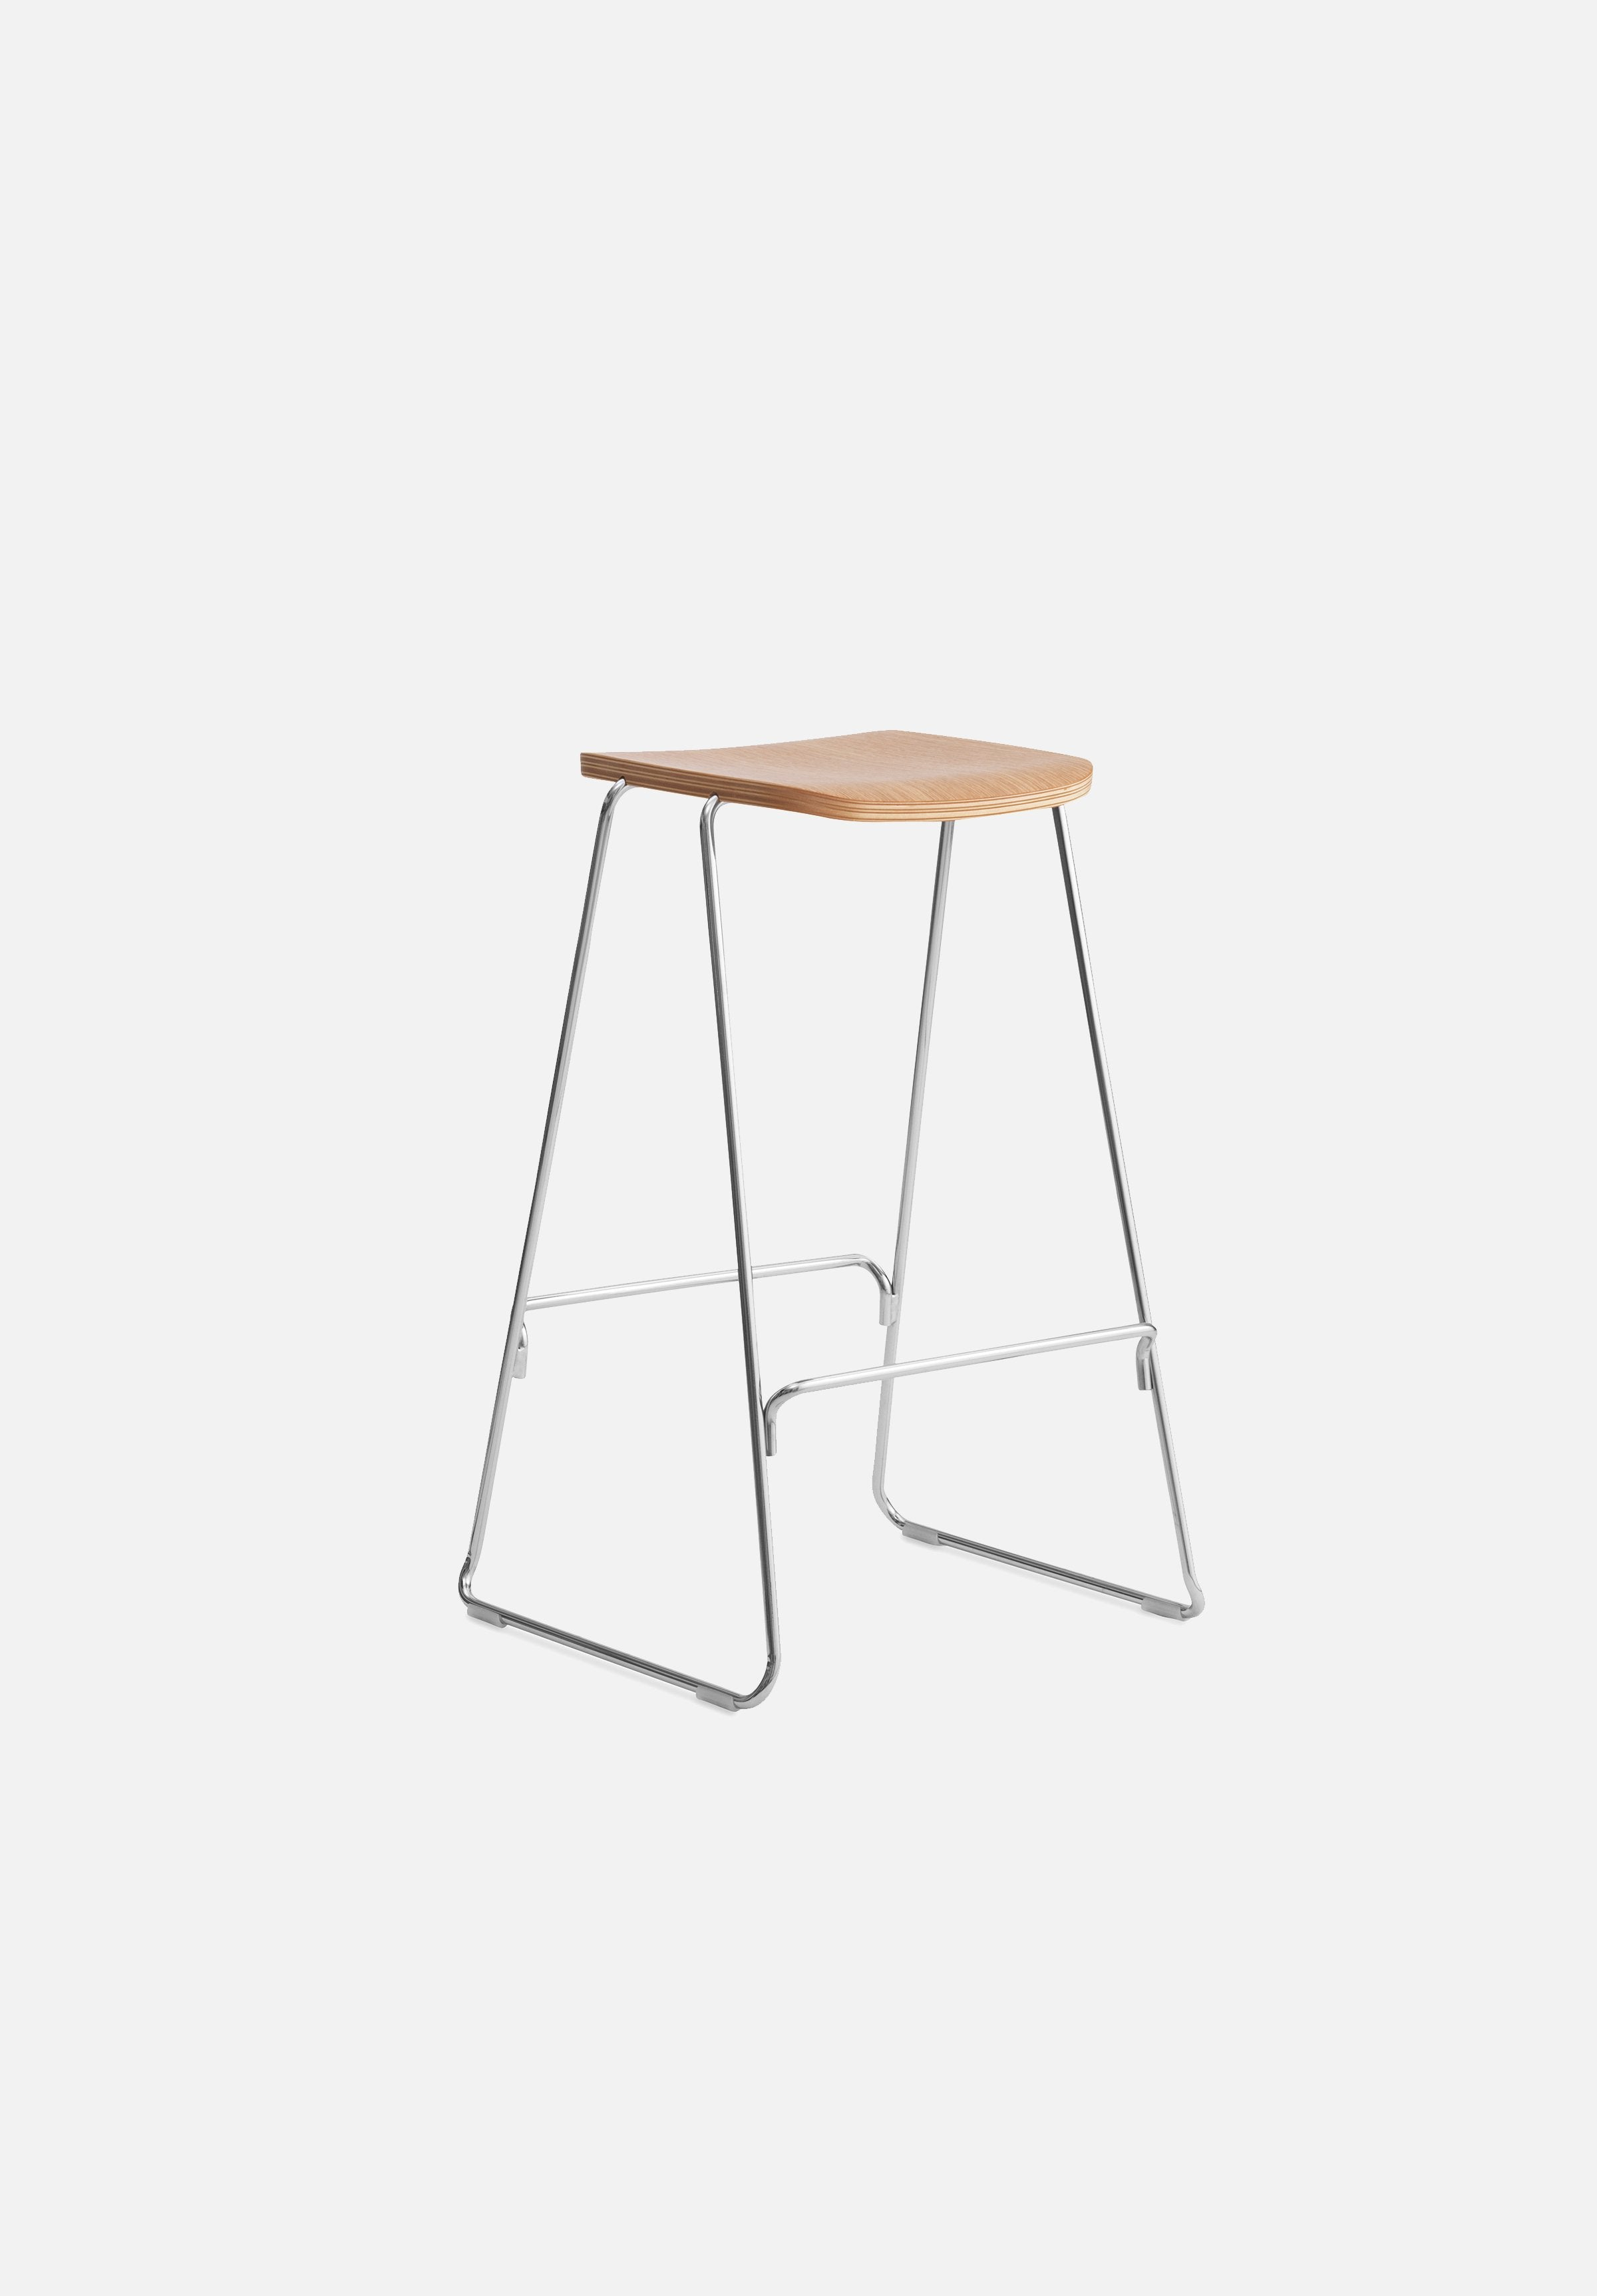 Just Stool-Iskos-Berlin-Normann Copenhagen-oak-75cm-Without-Average-canada-design-store-danish-denmark-furniture-interior